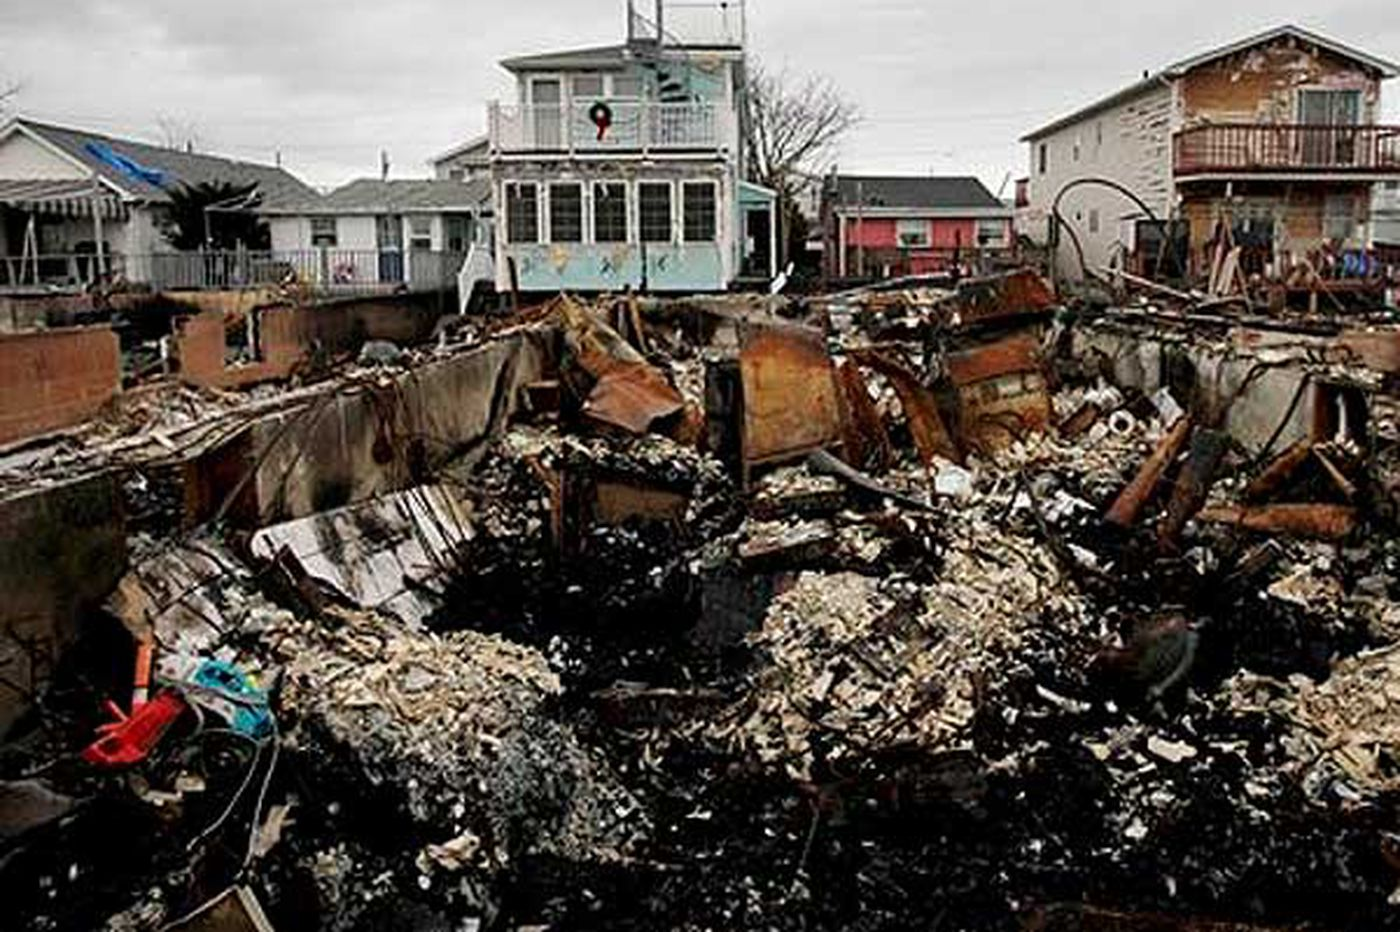 Obama requests $60.4 billion to help area recover from superstorm Sandy